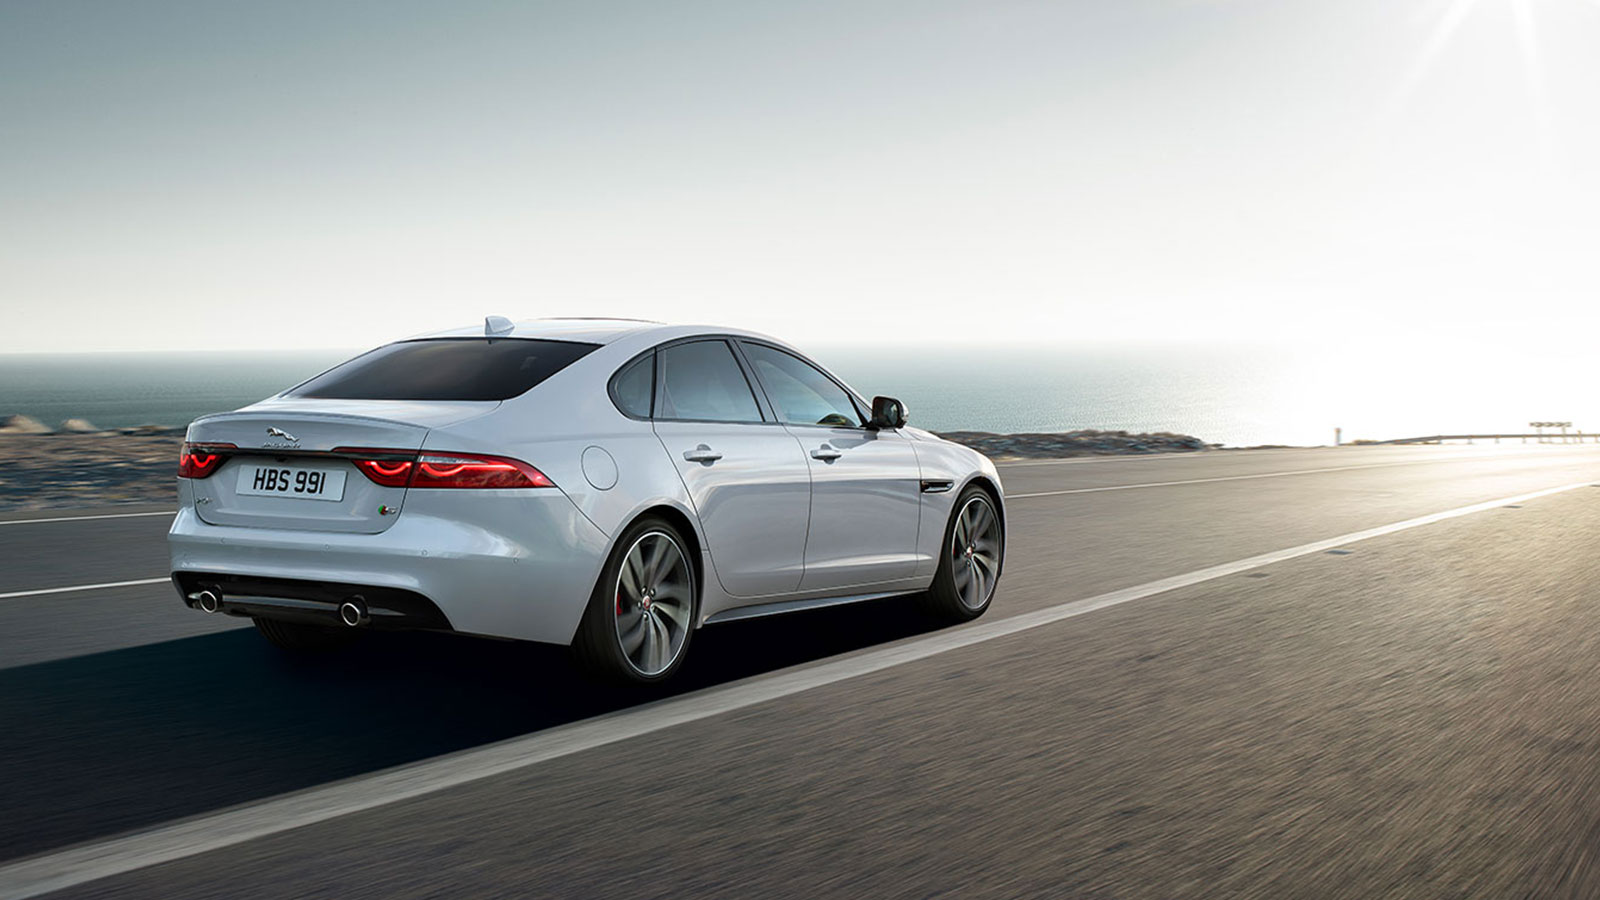 Rear View of Jaguar XF Drivien On Road.